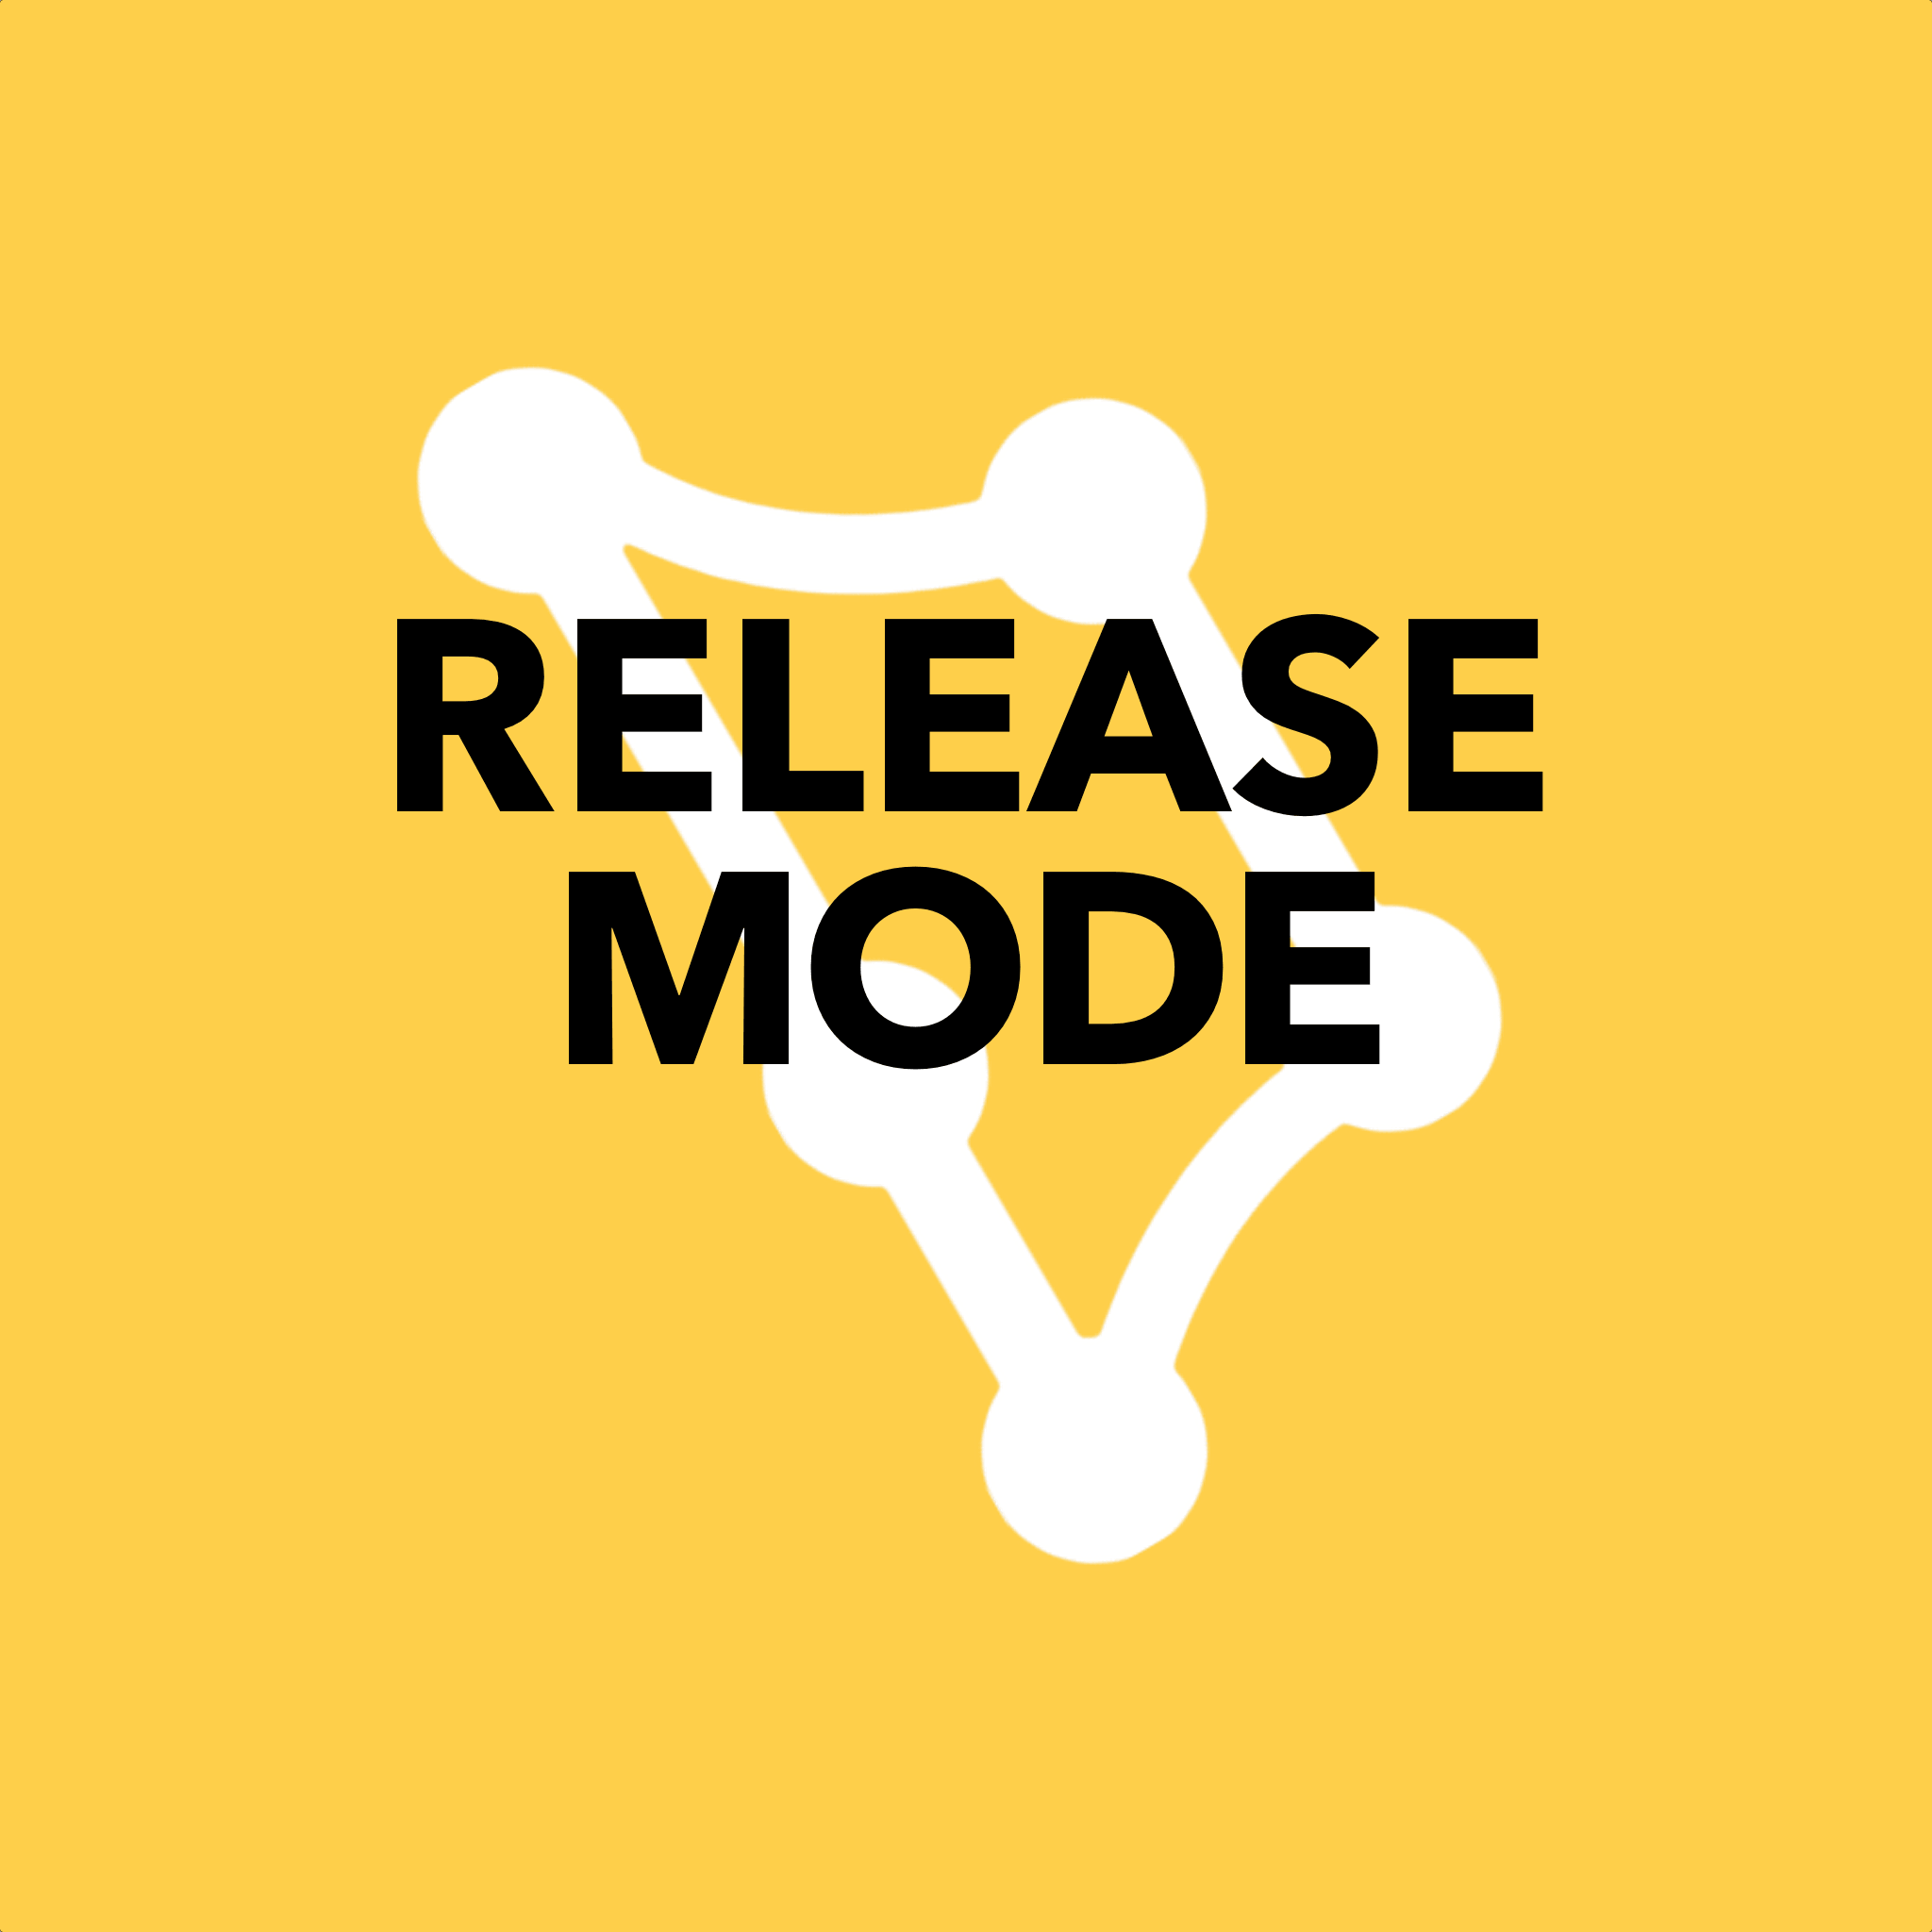 Release Mode